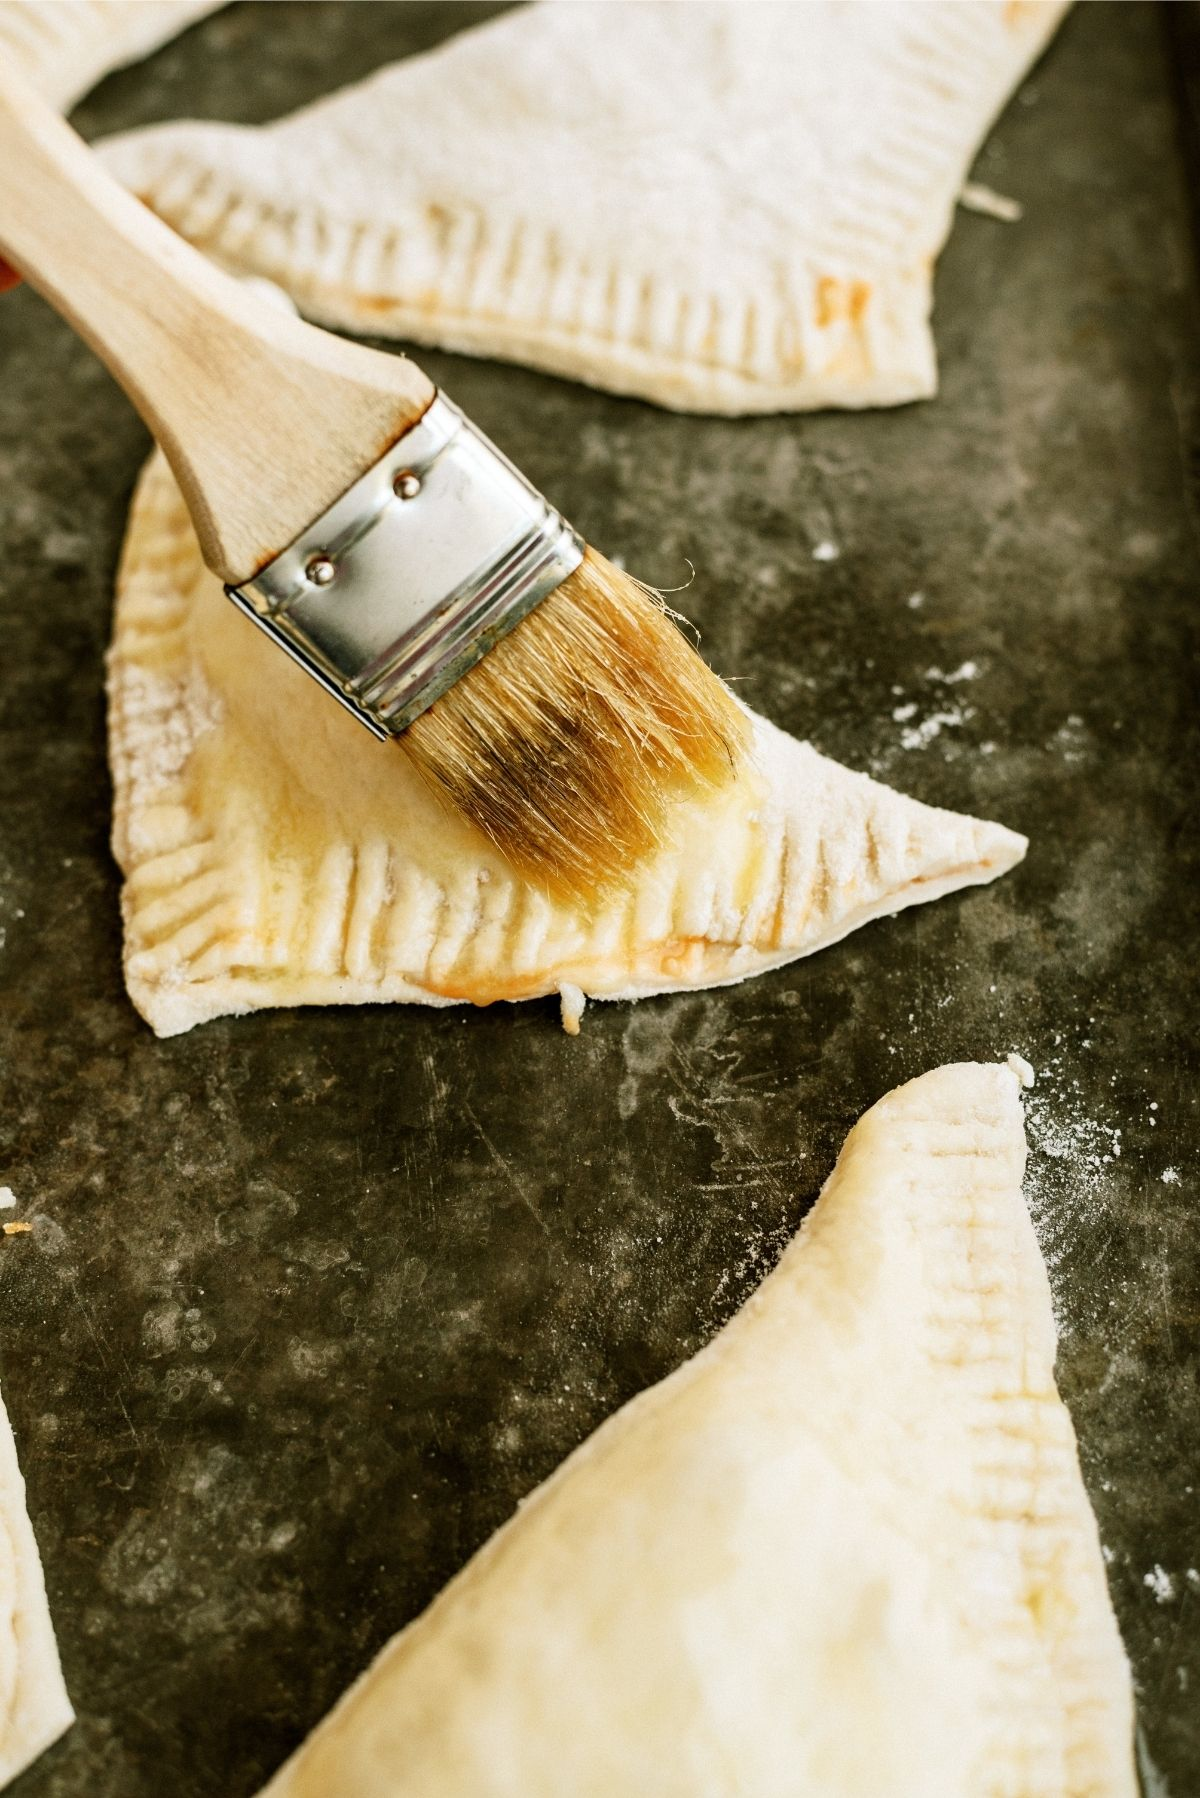 Brushing unbaked calzones with melted butter